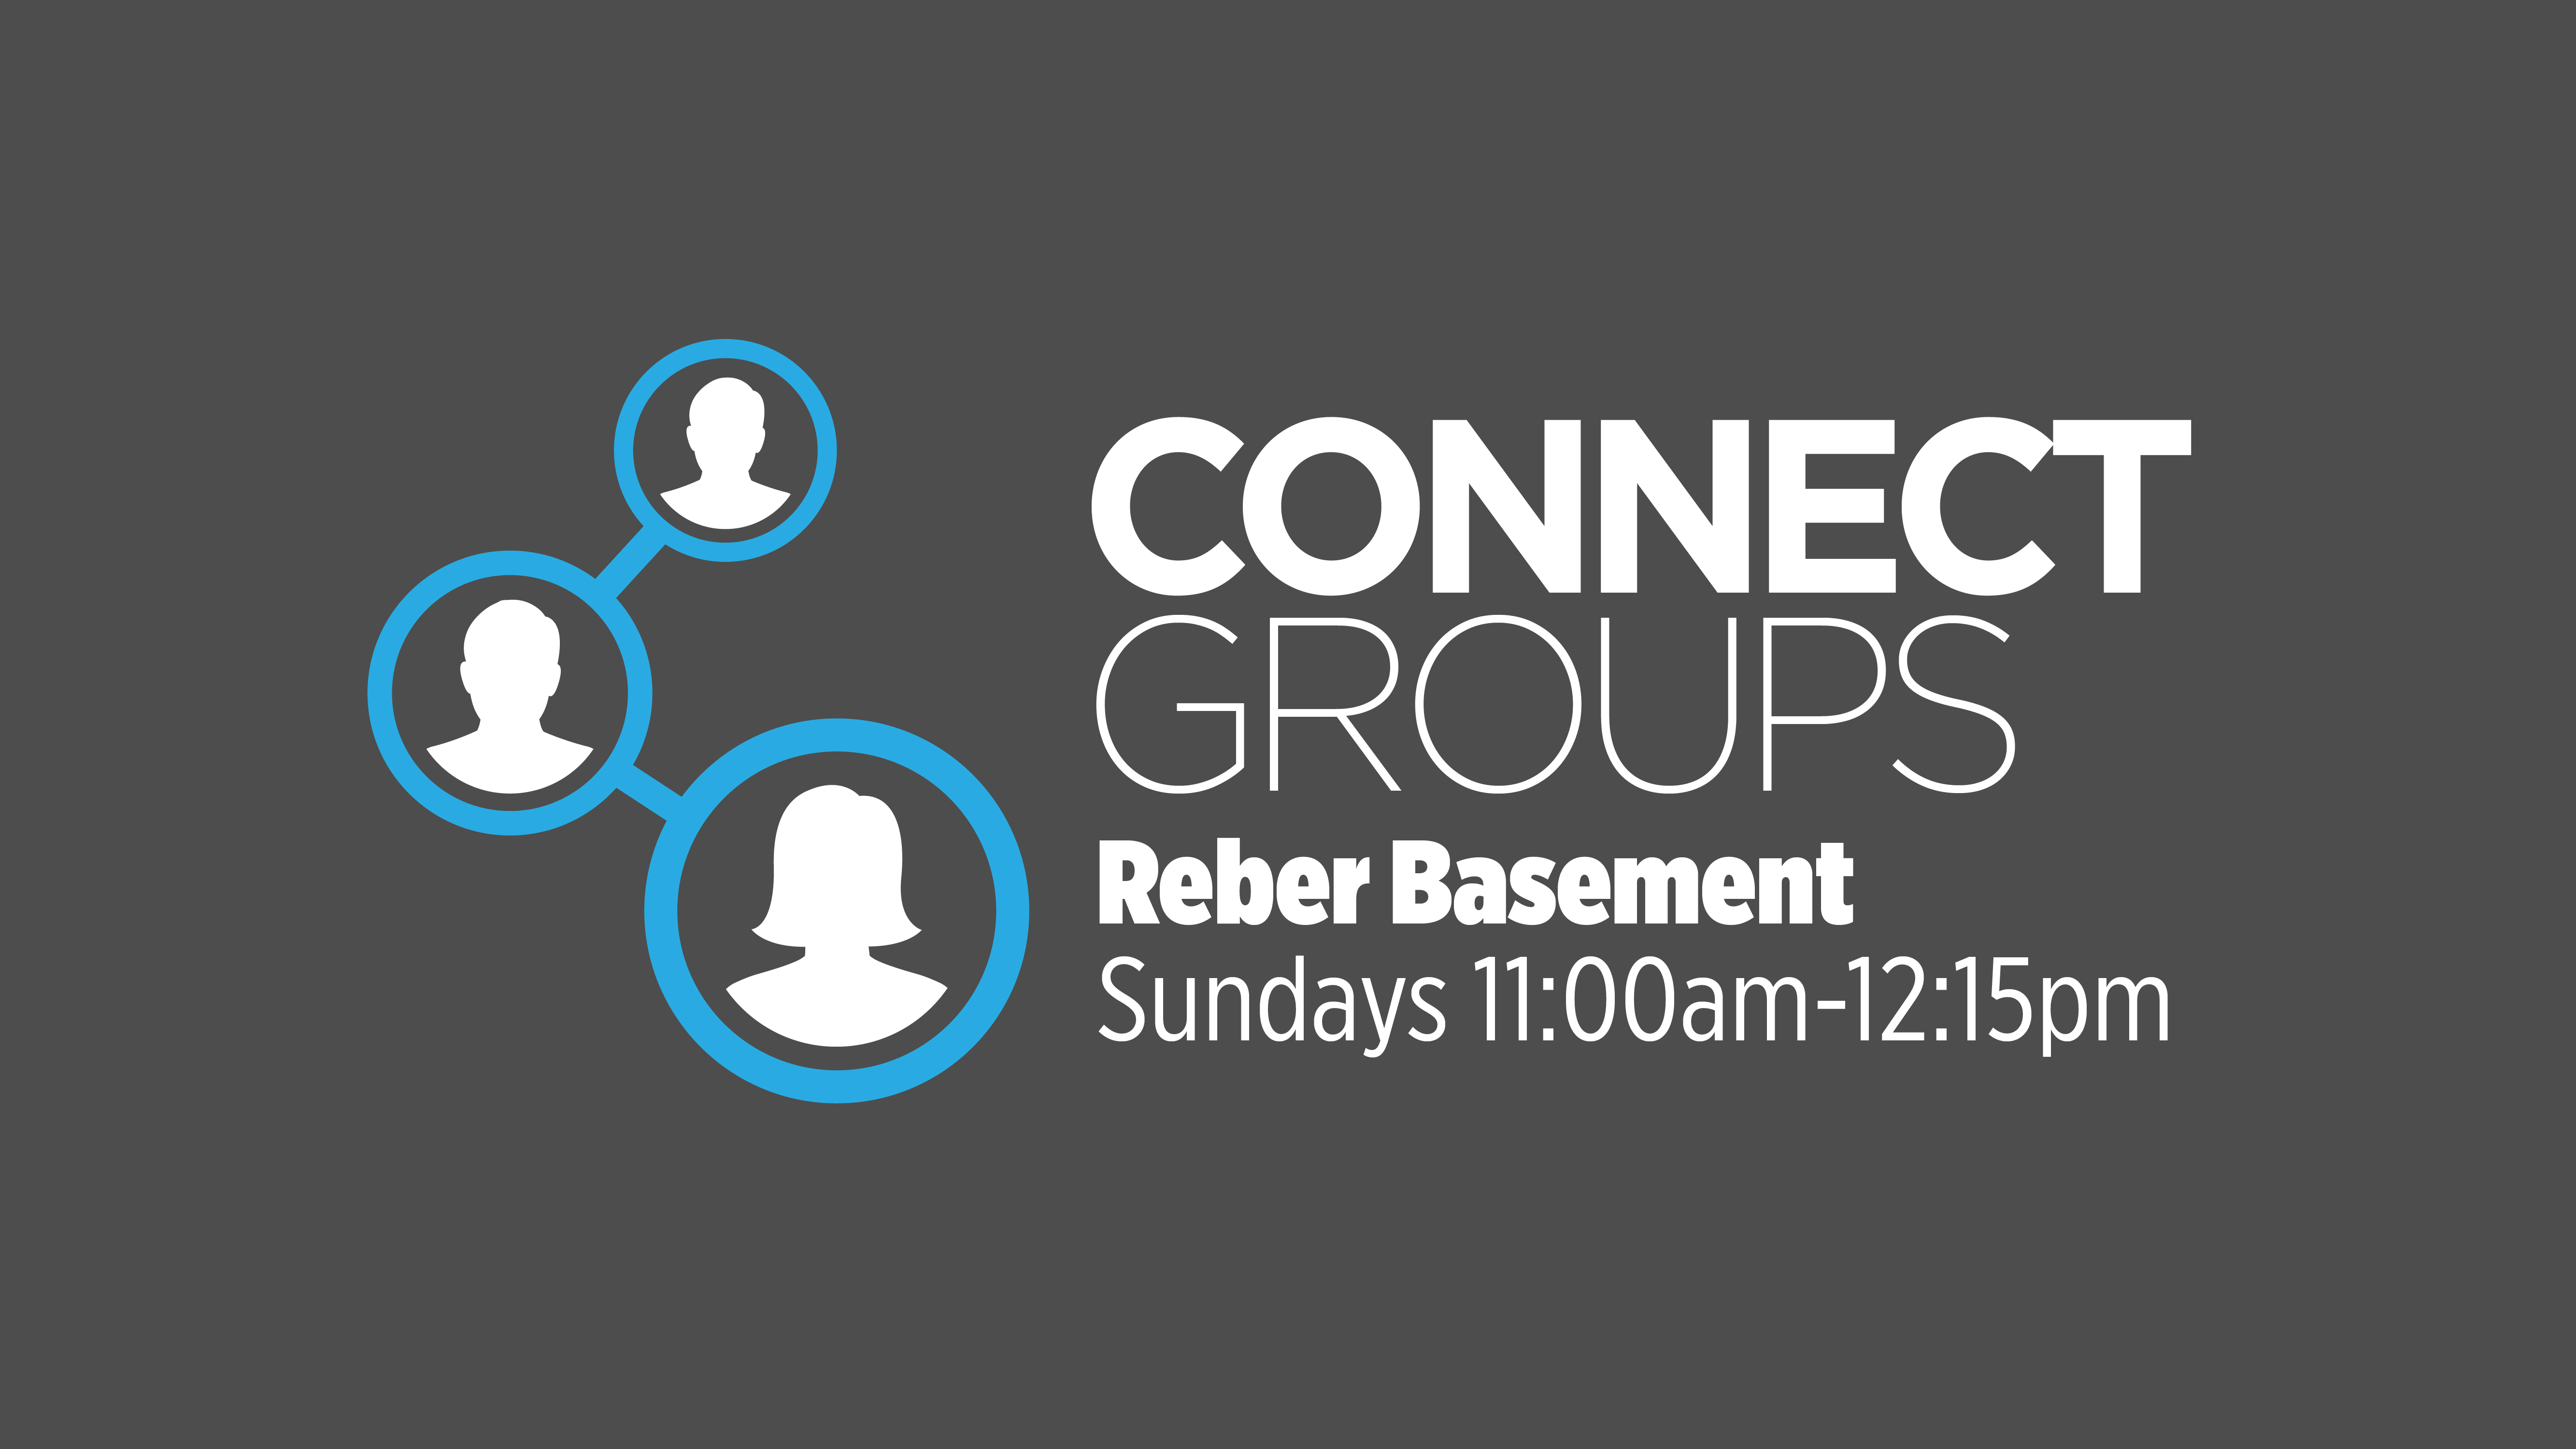 Connect groups time